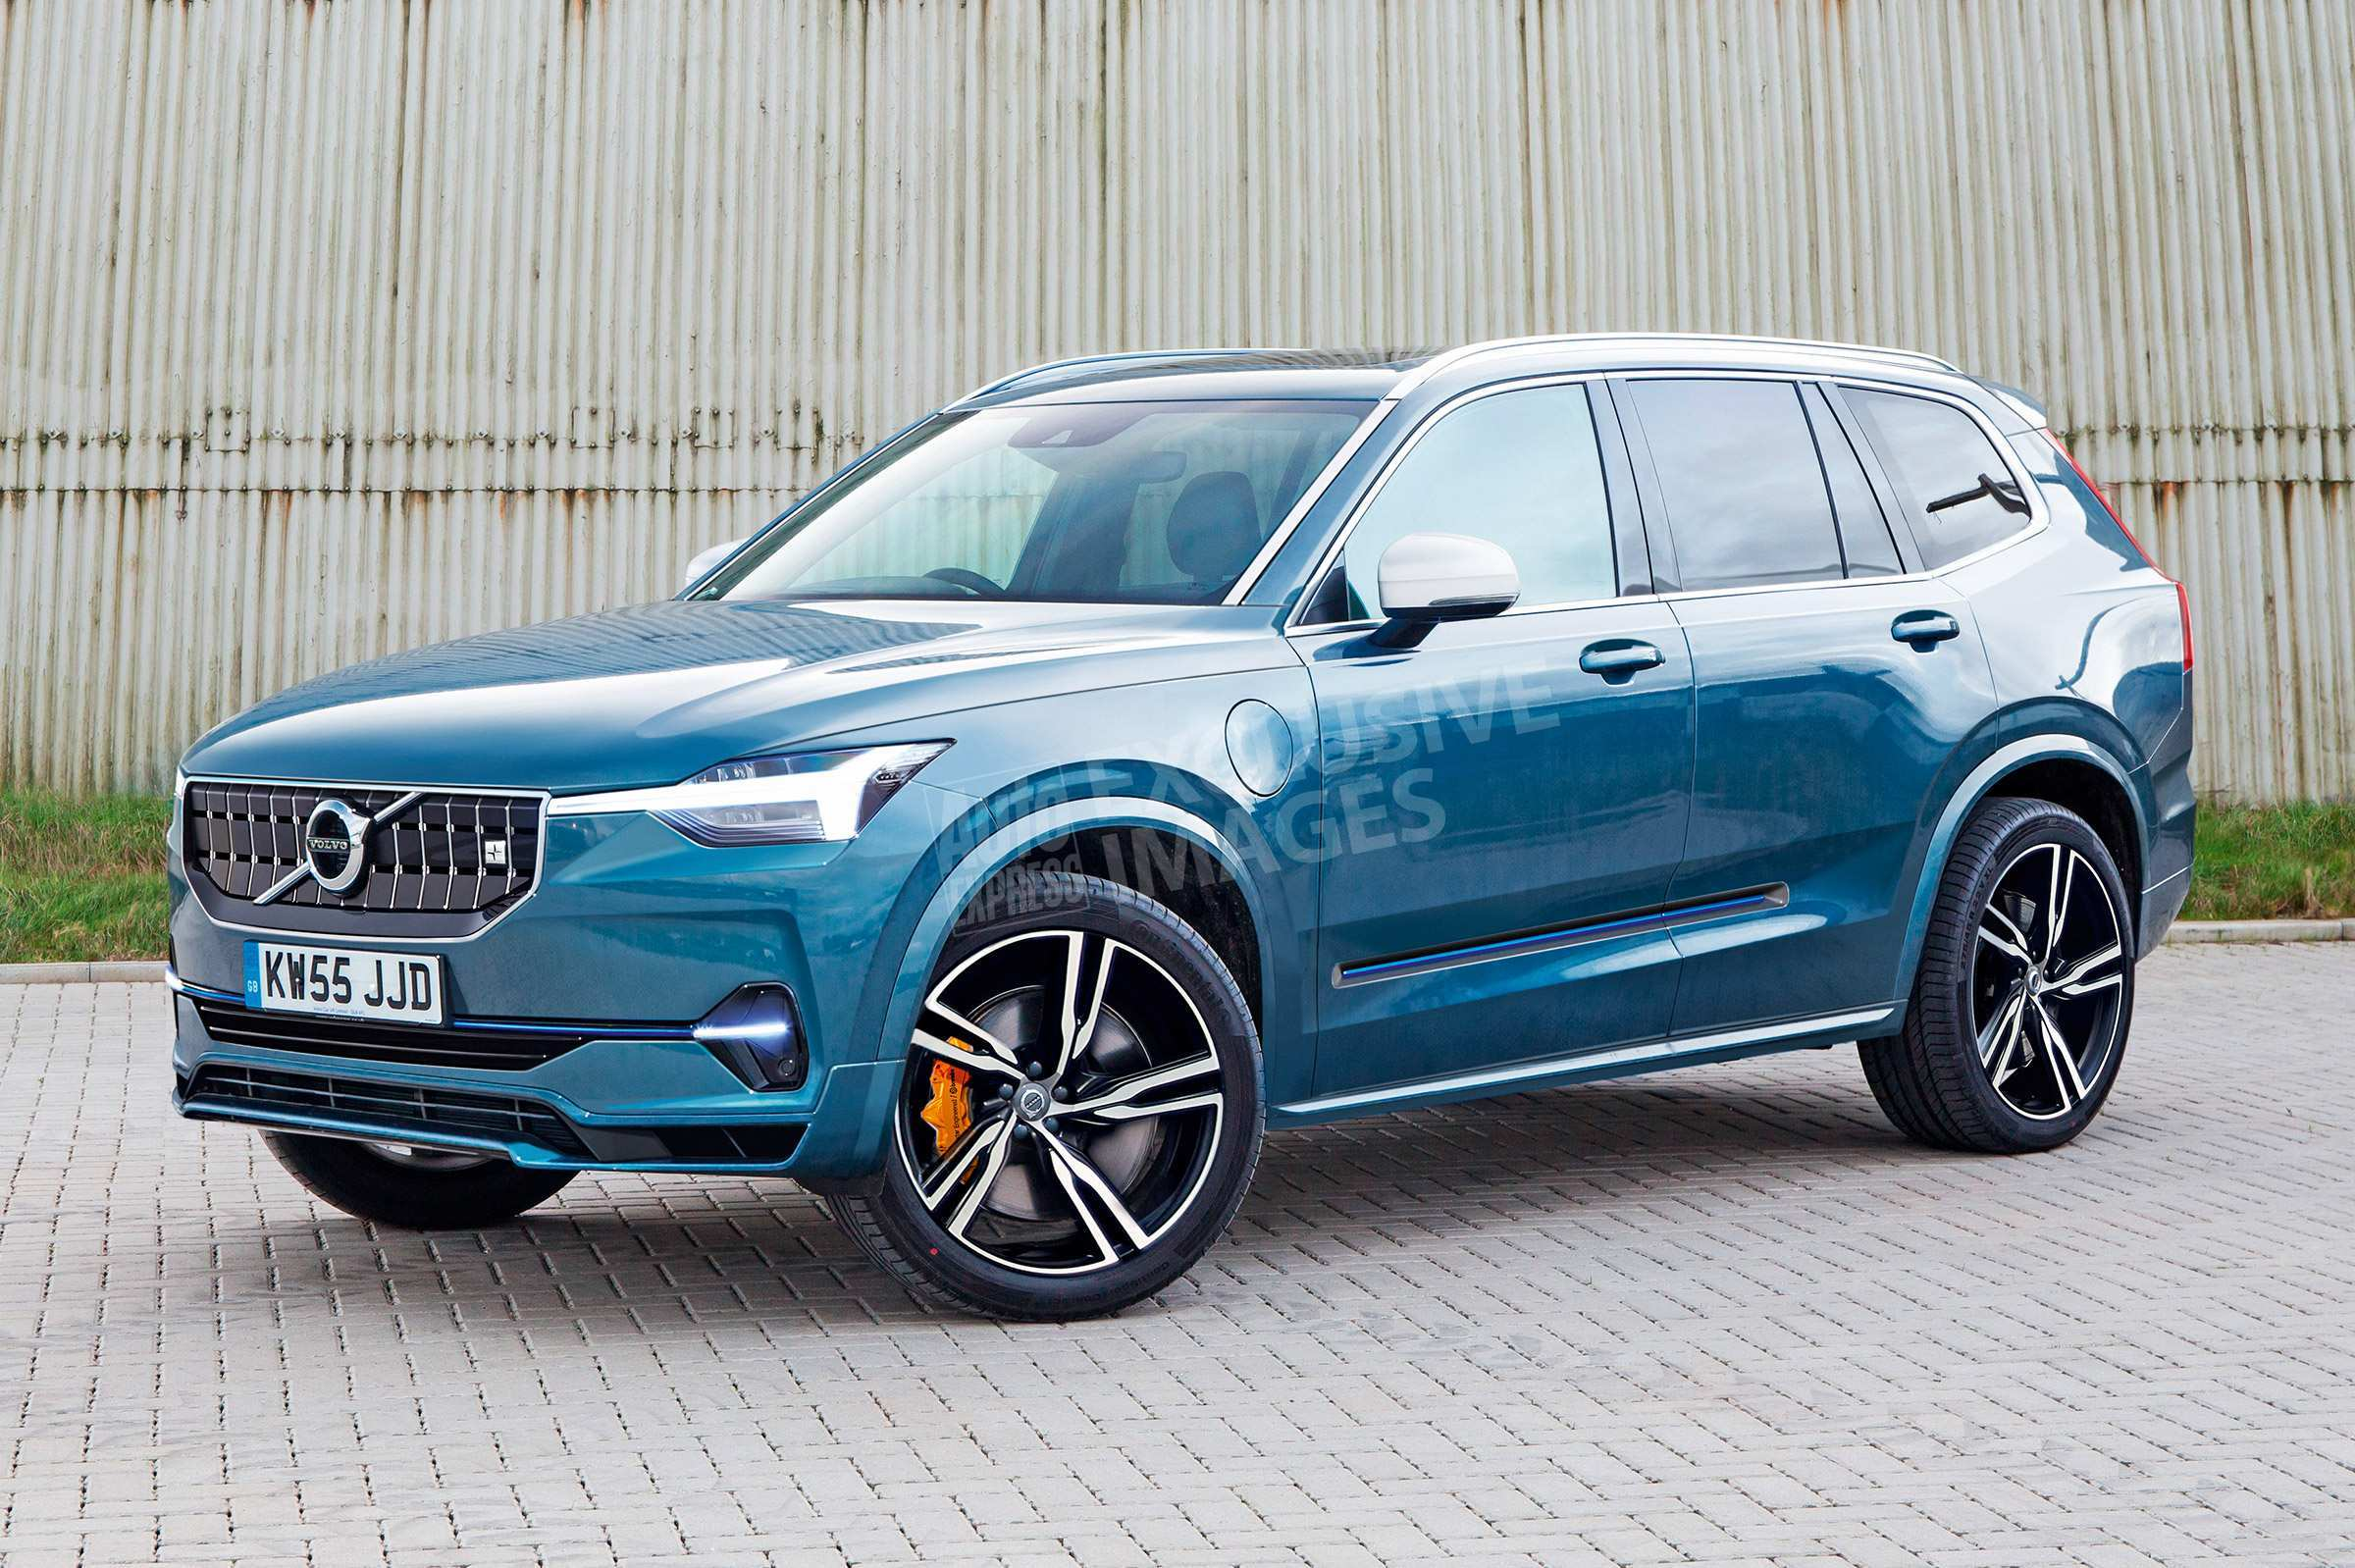 58 Concept of All New Volvo Xc90 2020 Redesign with All New Volvo Xc90 2020